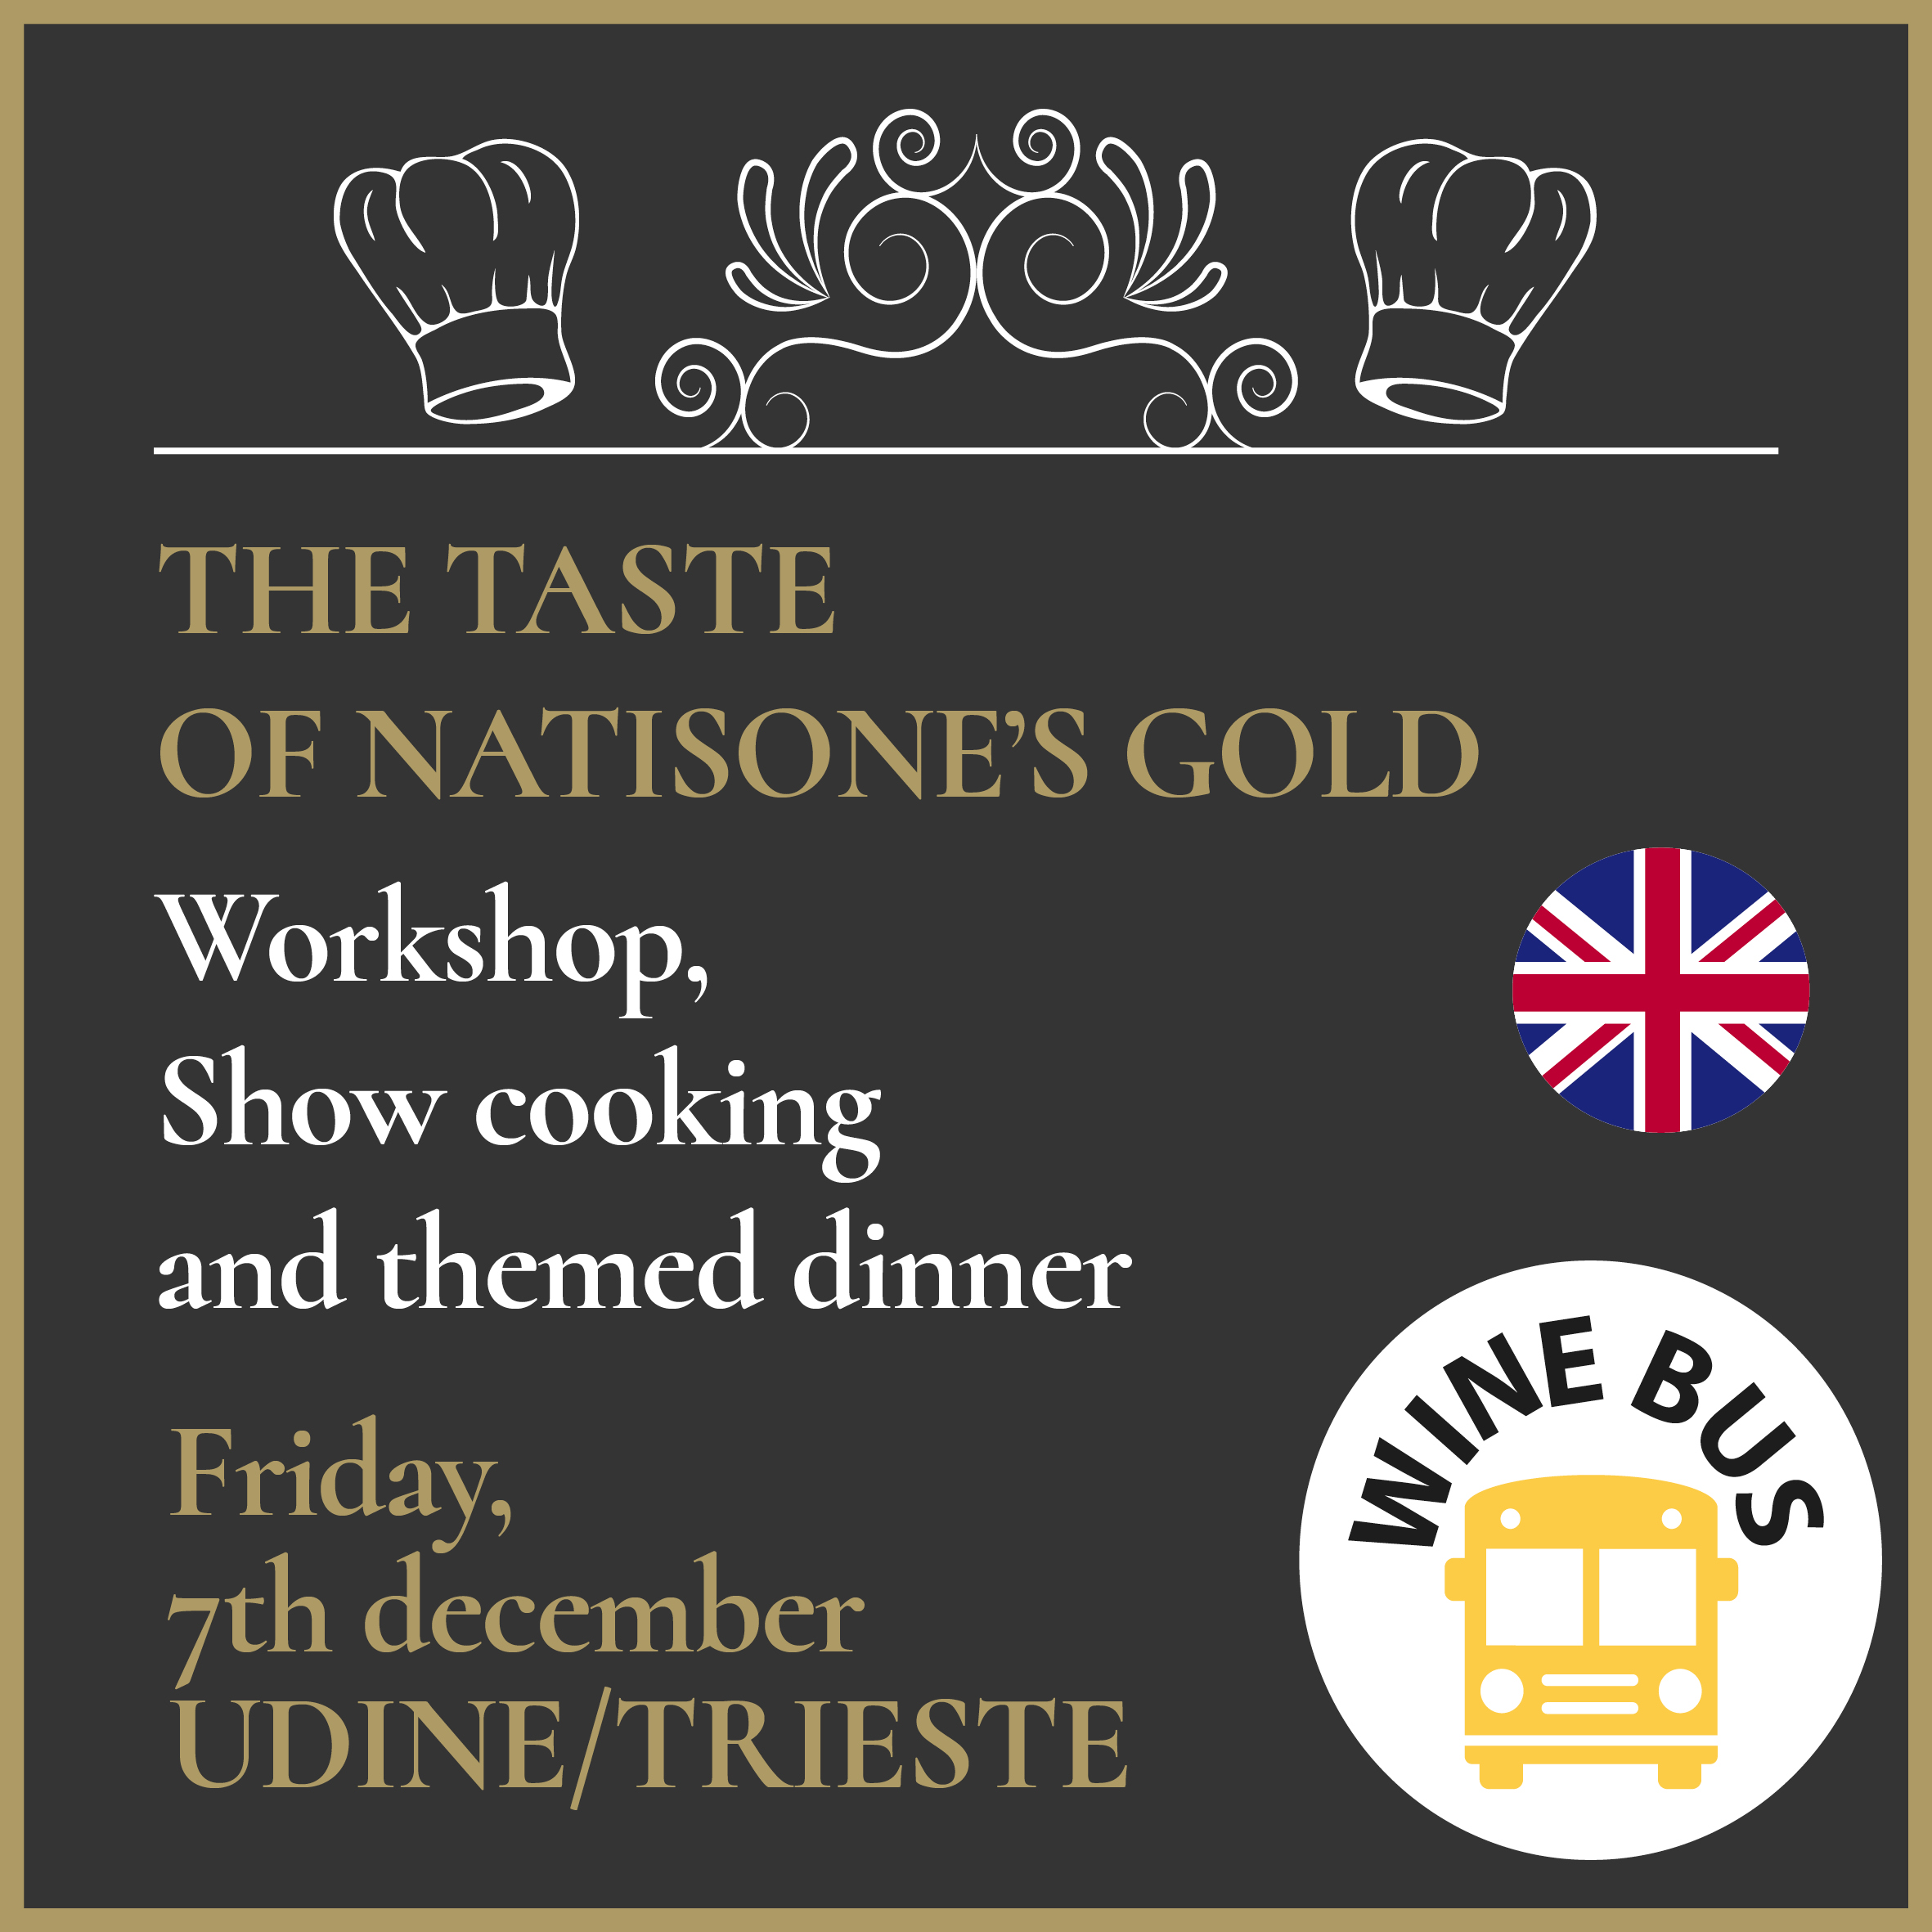 Wine Bus - The Gold of Natisone